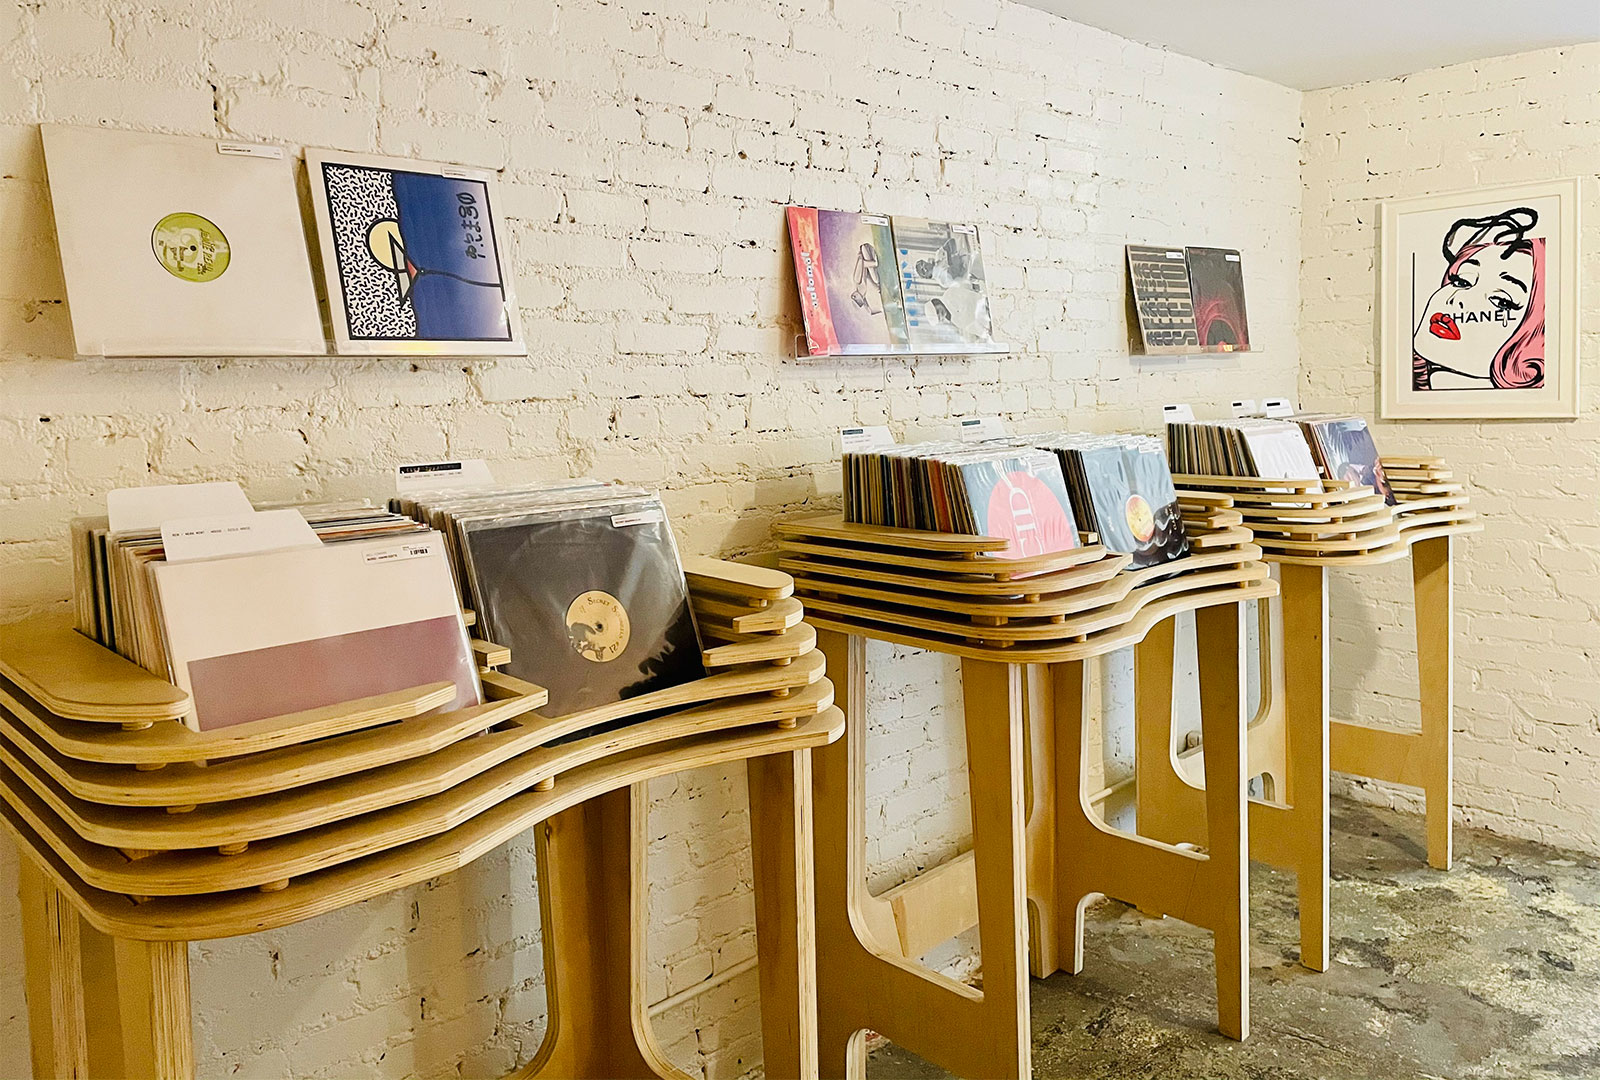 A new record shop has opened in Los Angeles, Chapter One